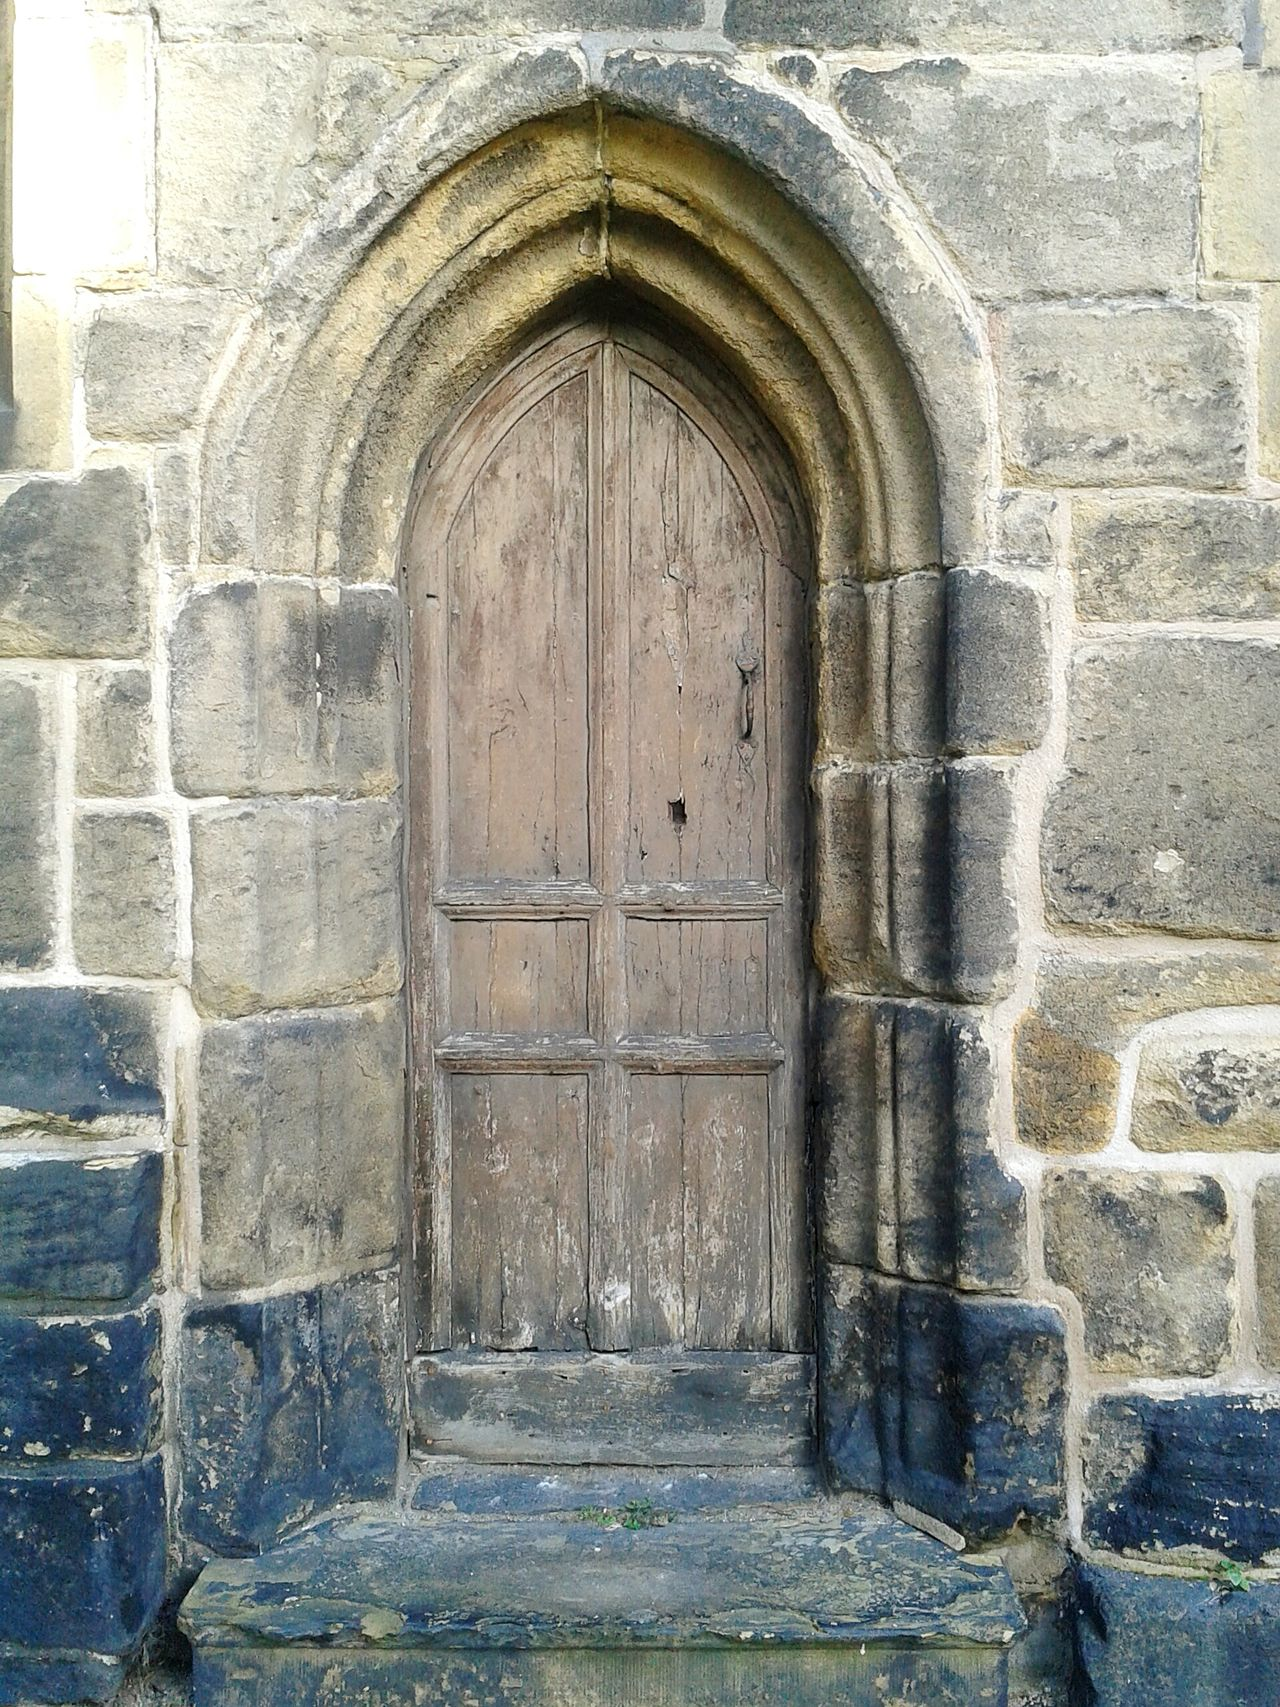 Doorporn Doorwaysoftheworld Doorway Churchyard Medieval Beautiful Stonework Entrance Oldbuildings Stonework Steps Hello World Peaceful Place Architectural Detail Churches Old Churches Medieval Architecture Praying Singing Sunday Mass Graveyard Beauty Minister Haunted Places Valley Autumn Check This Out